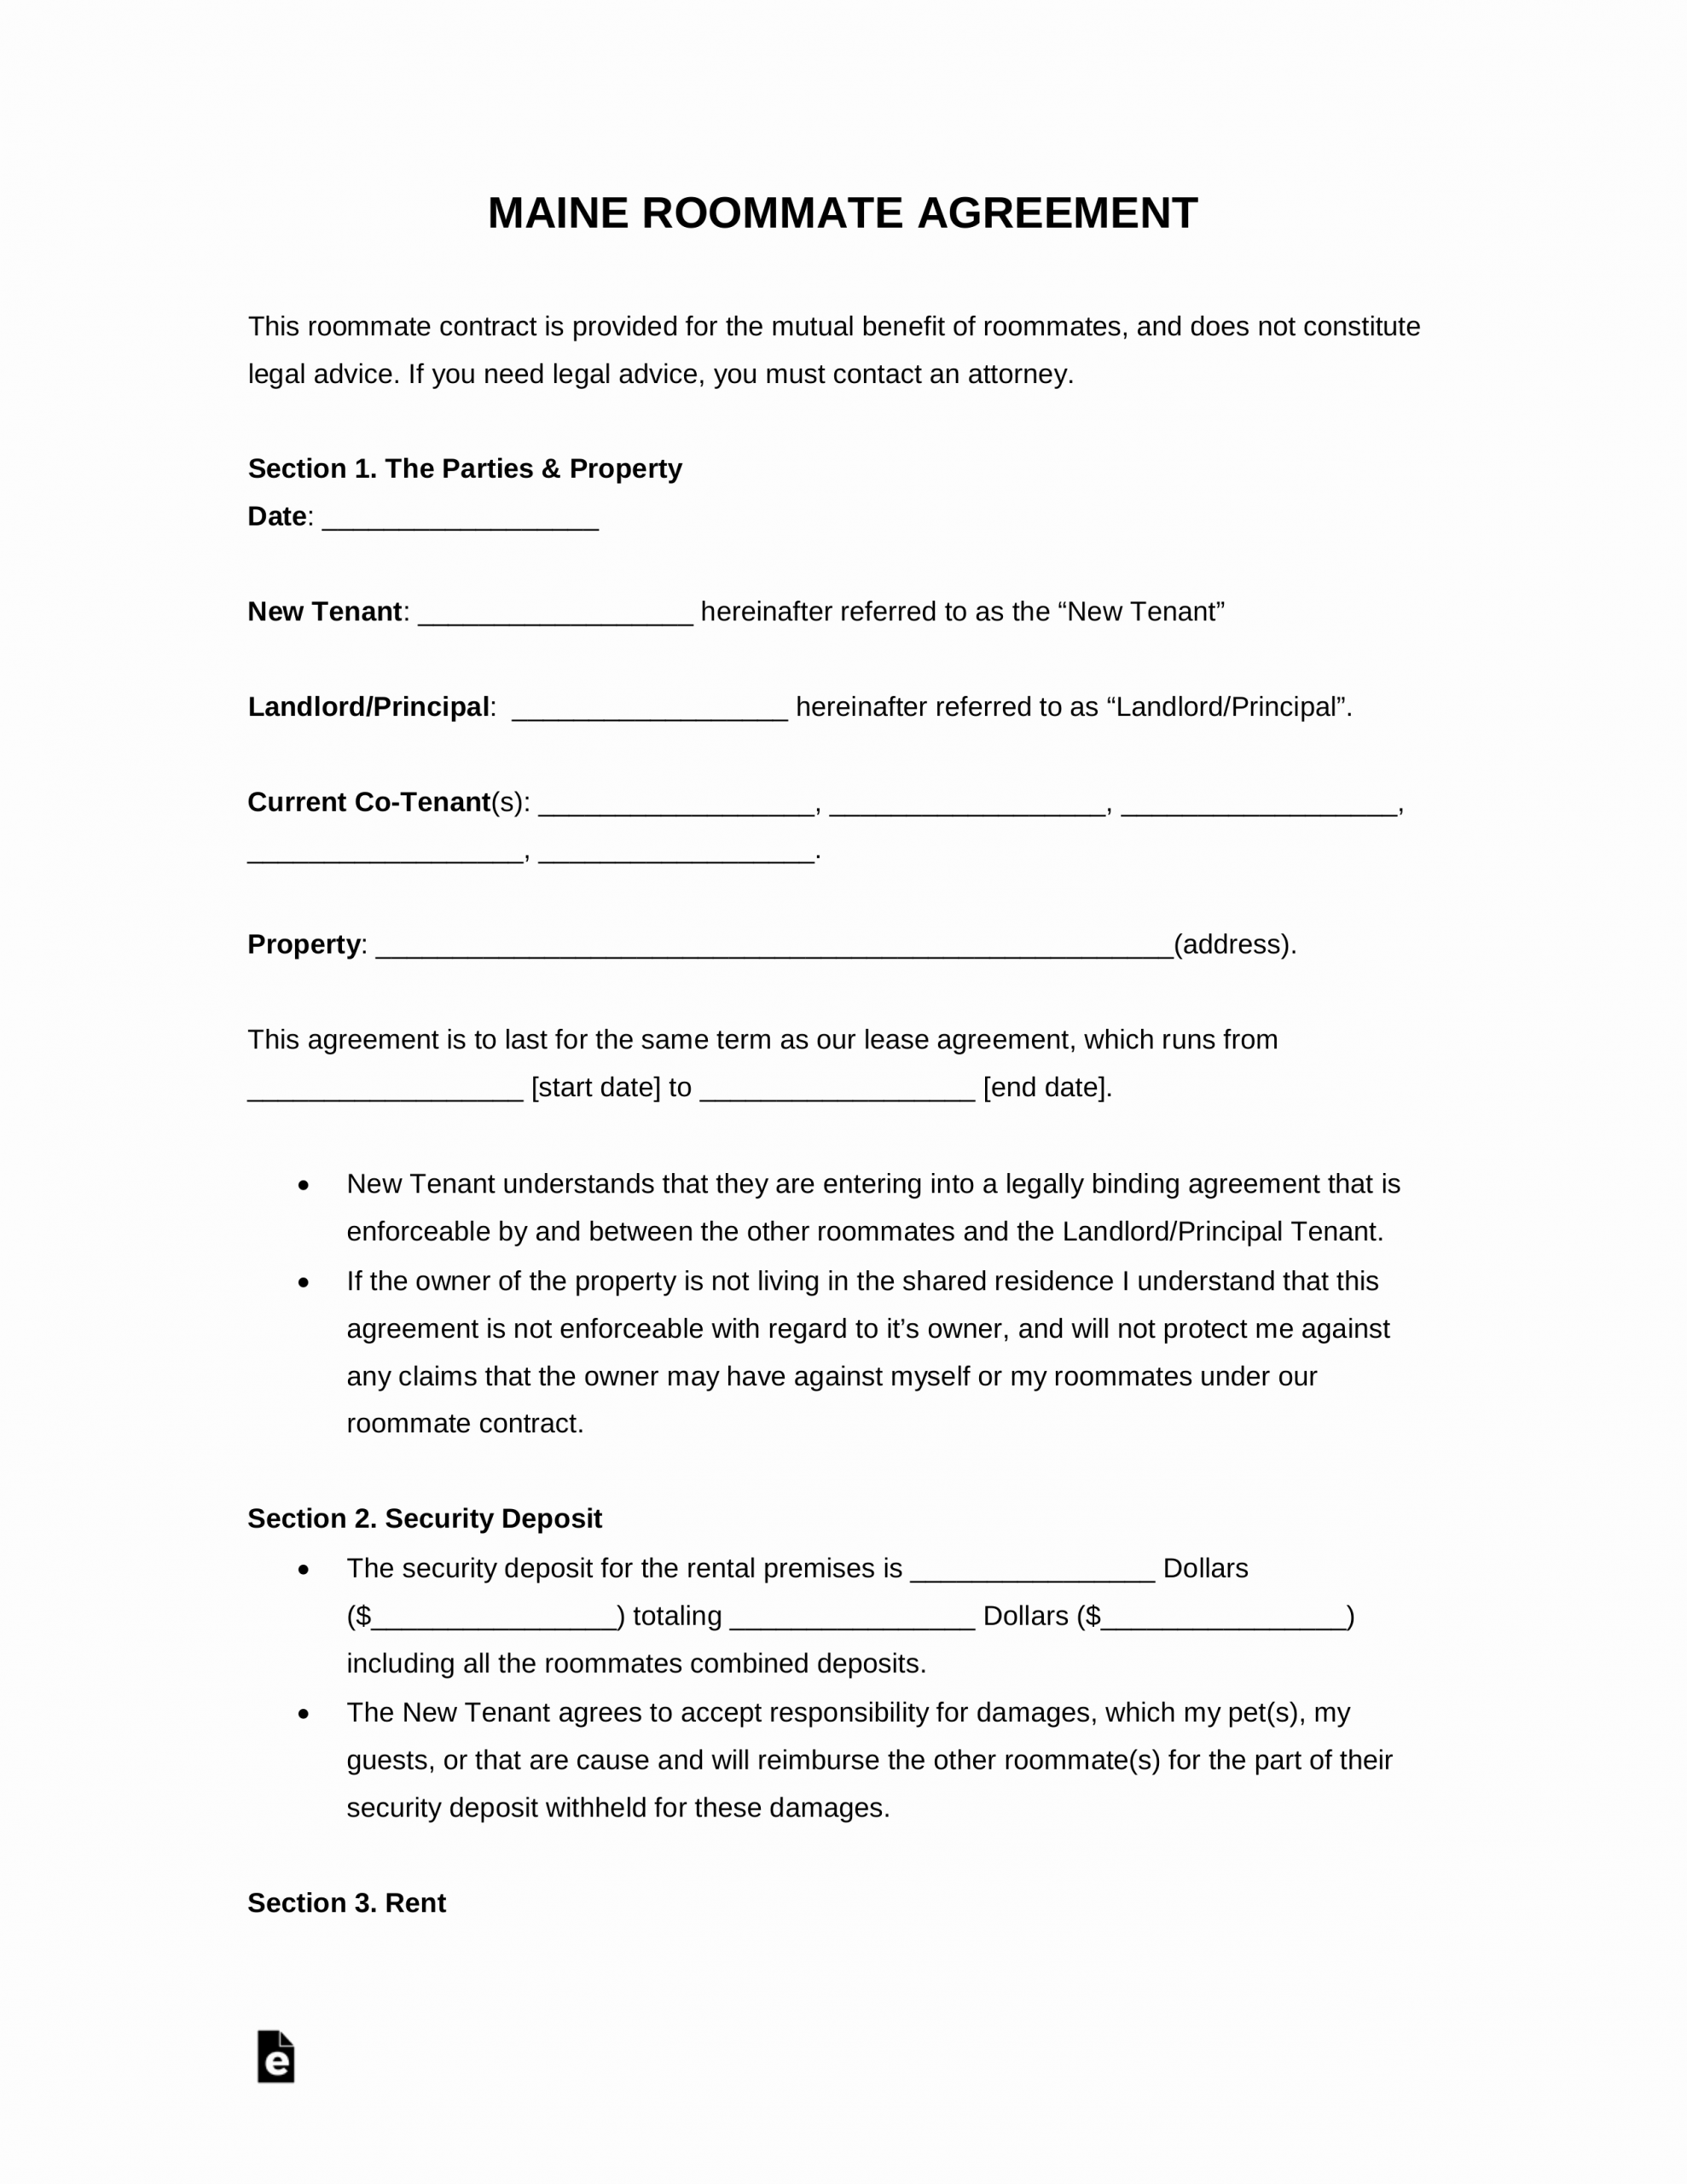 Roommate Eviction Notice Template Luxury Free Maine Roommate Agreement Template Pdf